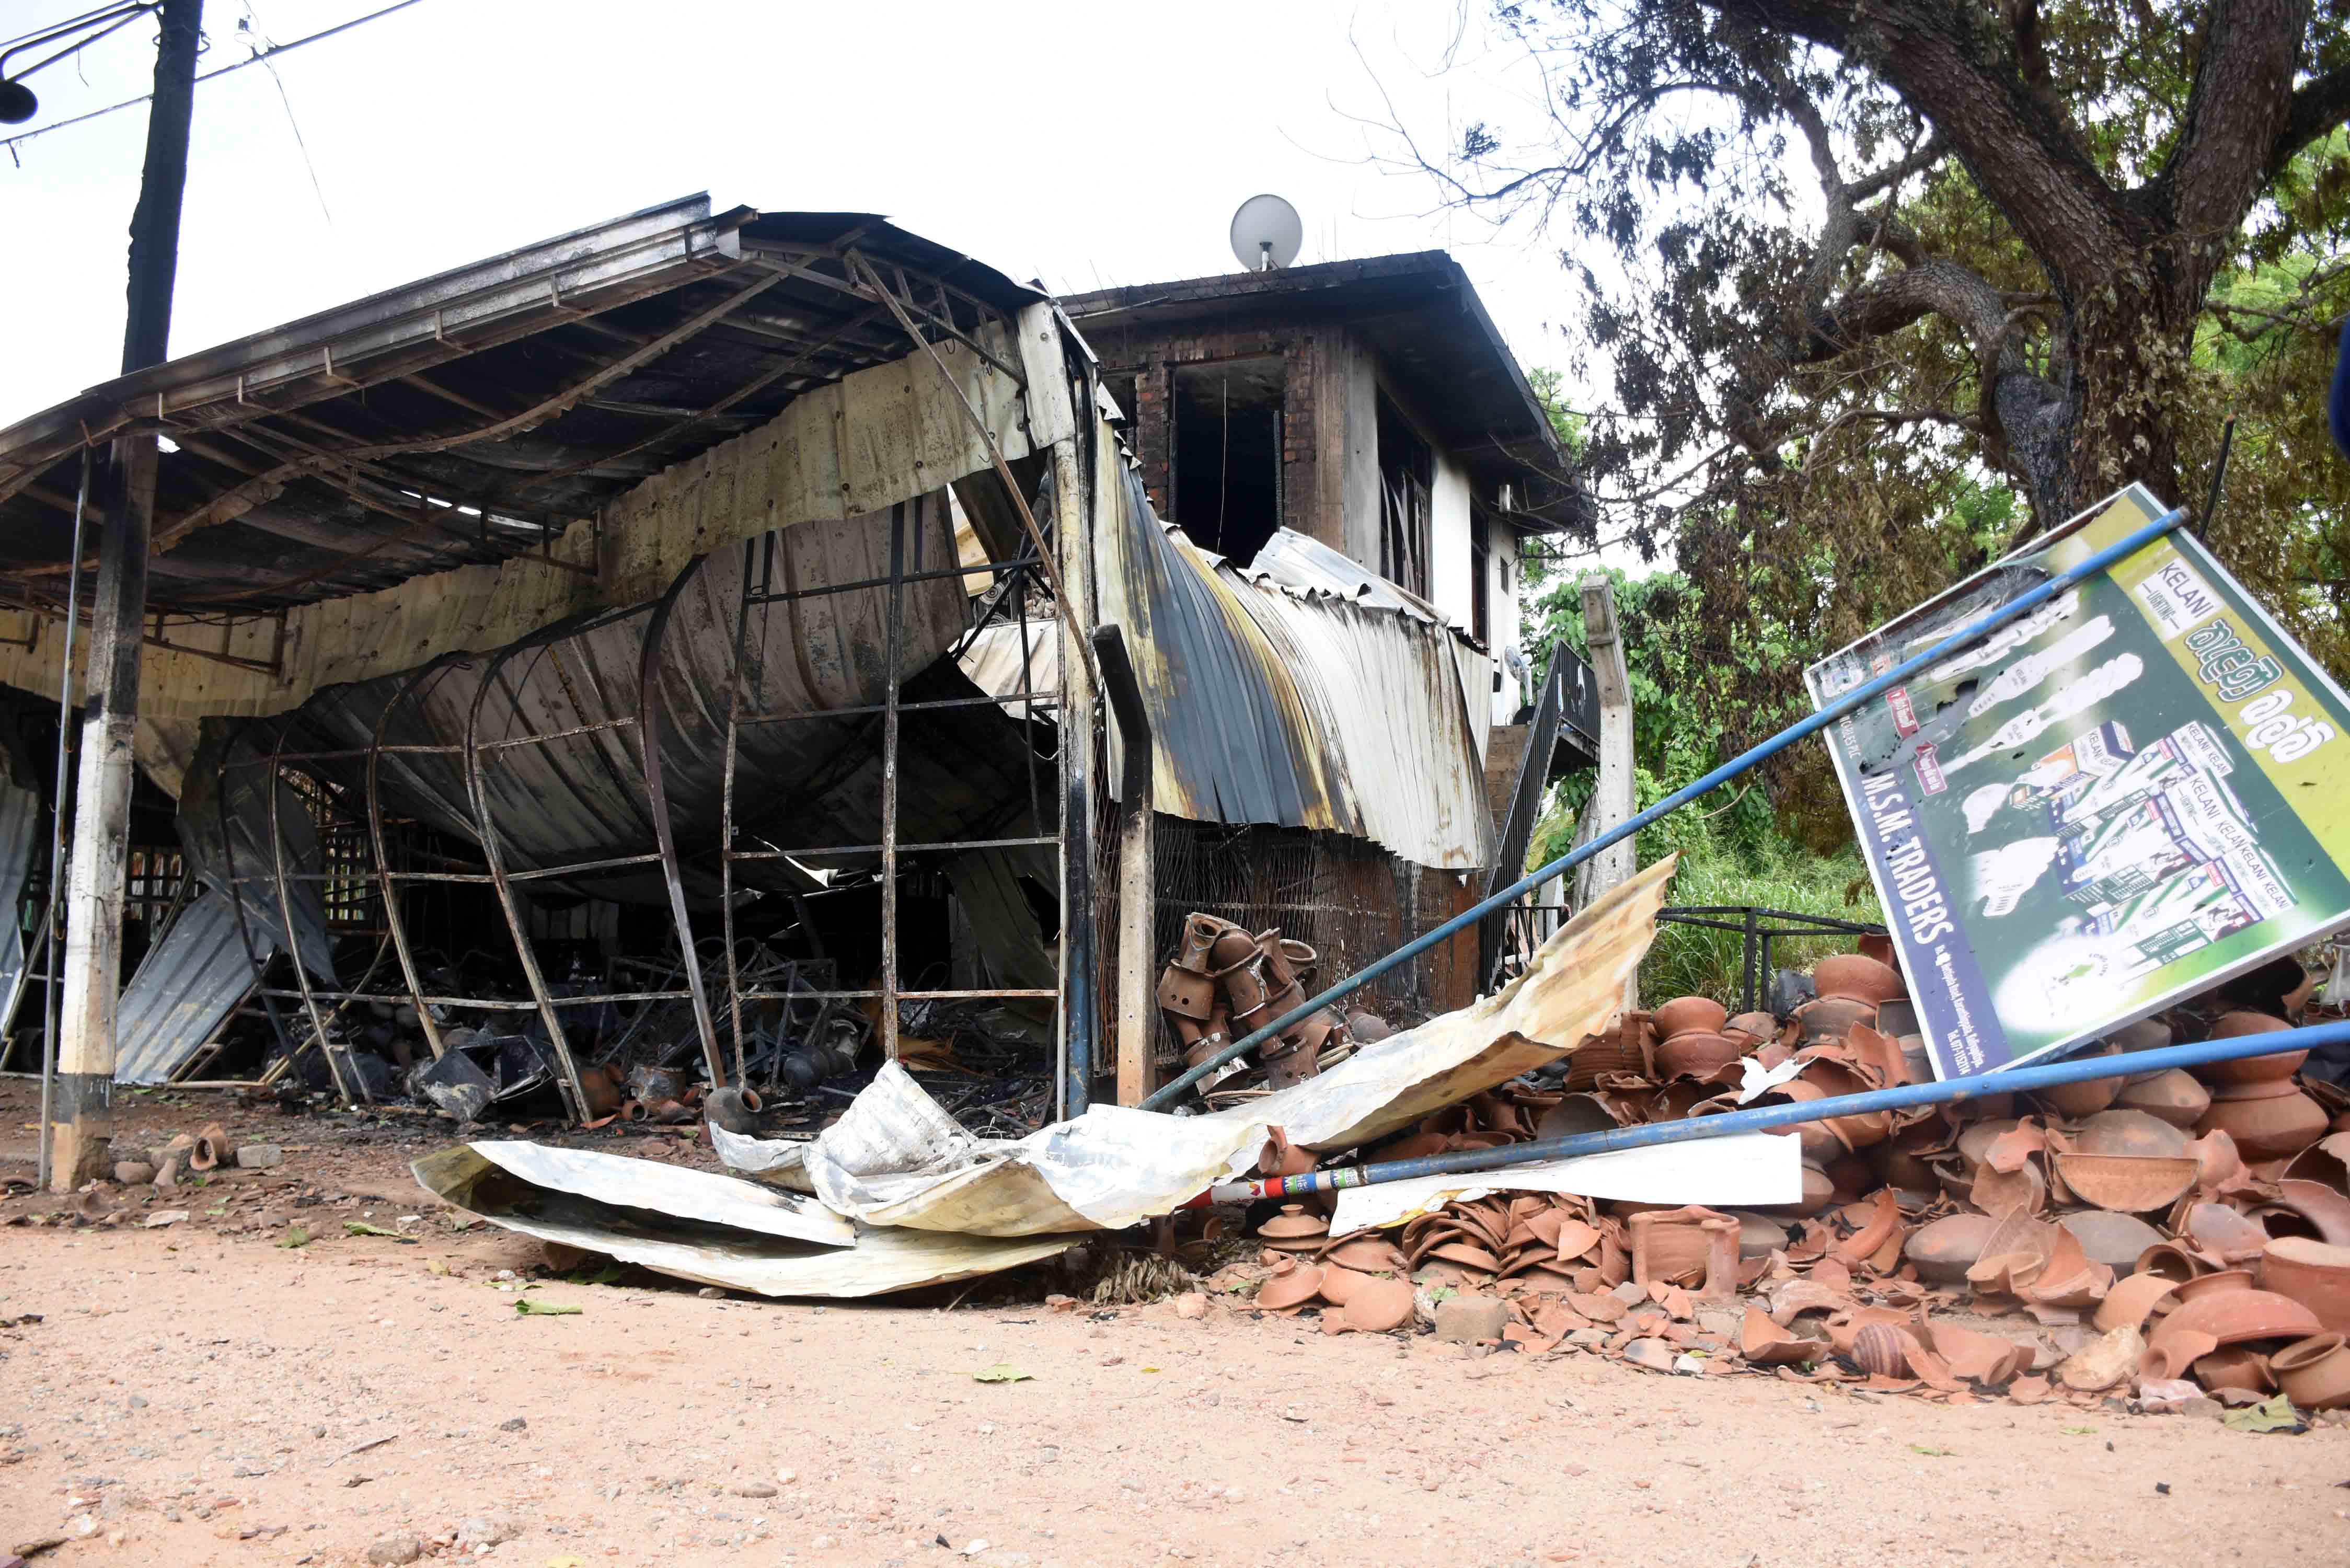 Violence in parts of Sri Lanka - android - Phones Developers -000c34c45e0f4c1998d8e0ebe7dd430d